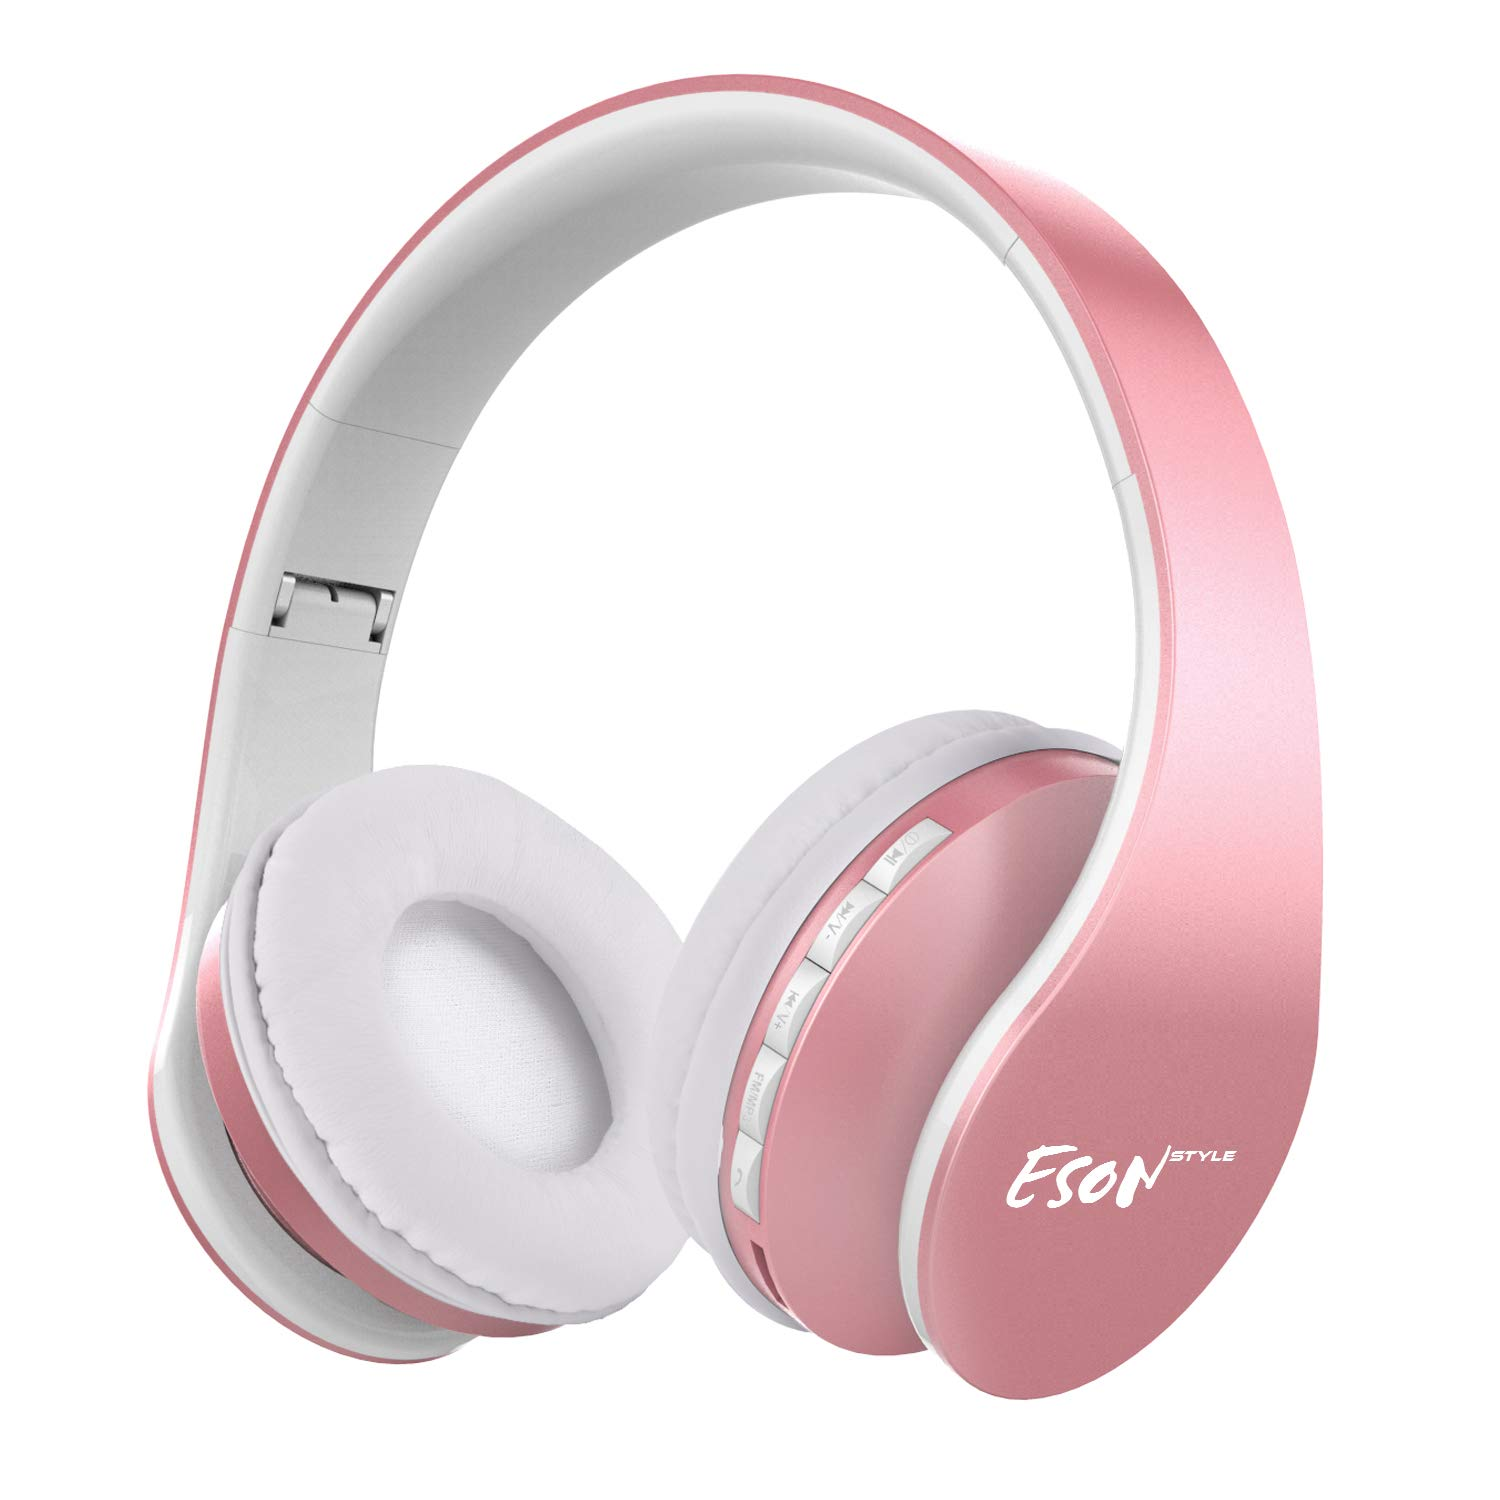 Auriculares Bluetooth Over-ear Esonstyle Inalambrico Stereo Plegable Inalambrico Y Con Cable Headsets Con Microfono Inco